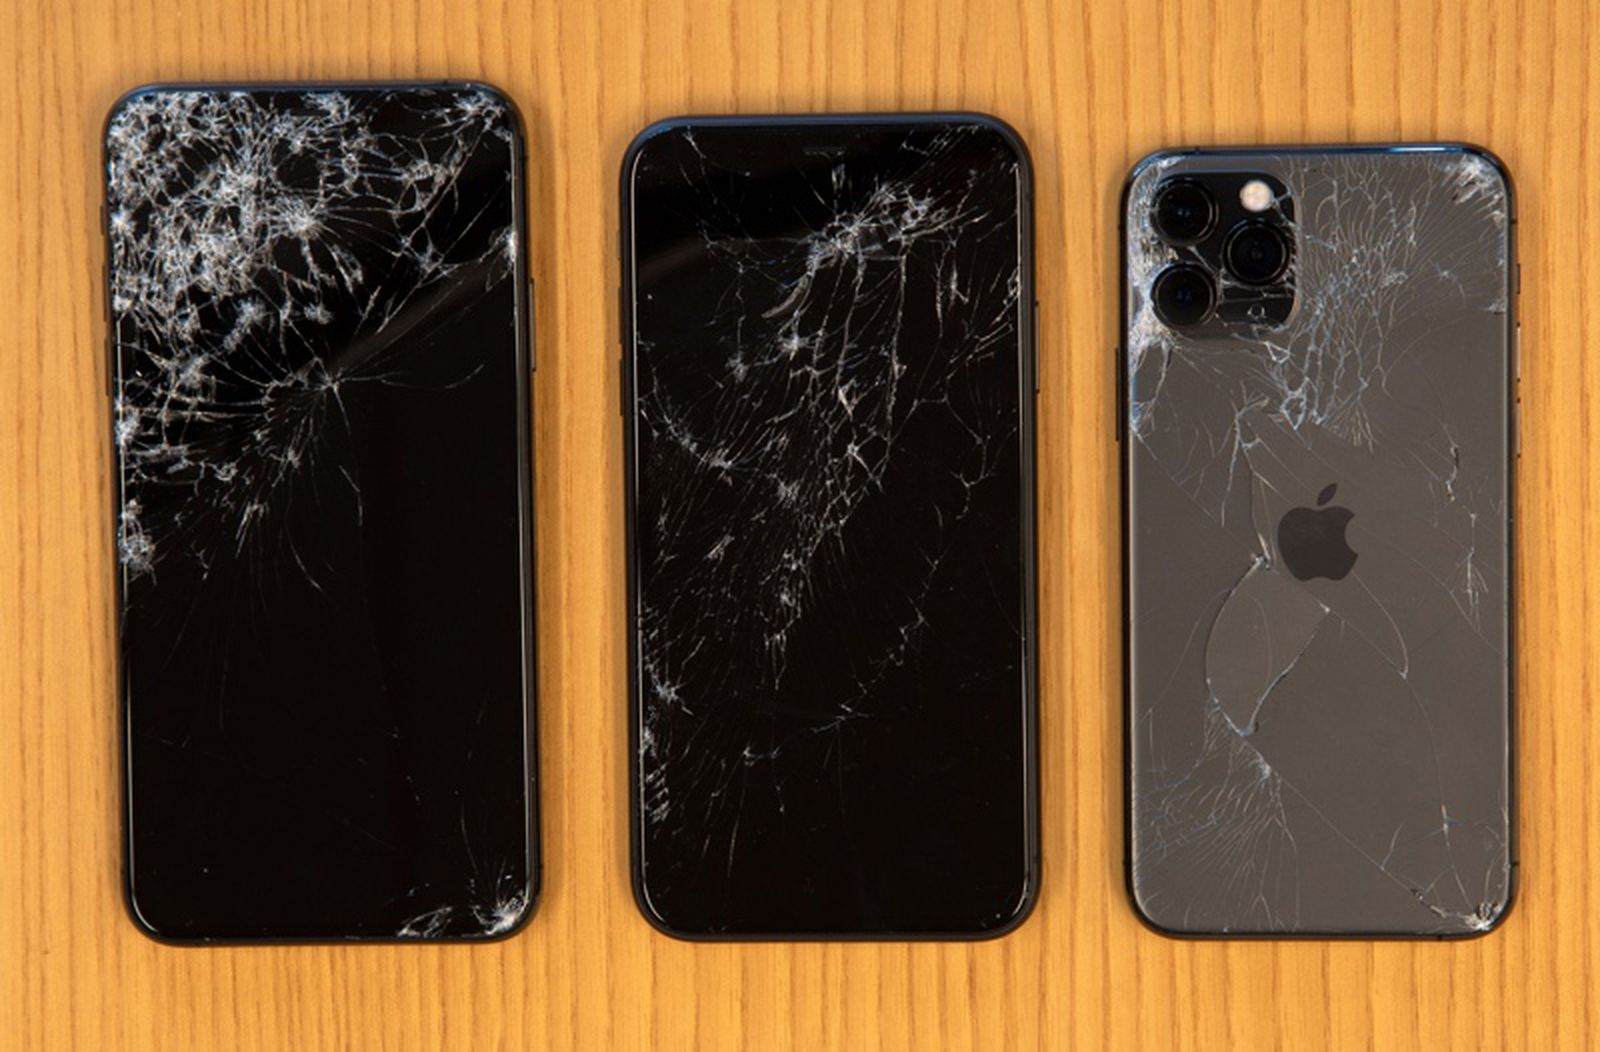 Durability Tests Suggest New Iphones Can Survive Some Drops But Still Break From Major Falls Macrumors